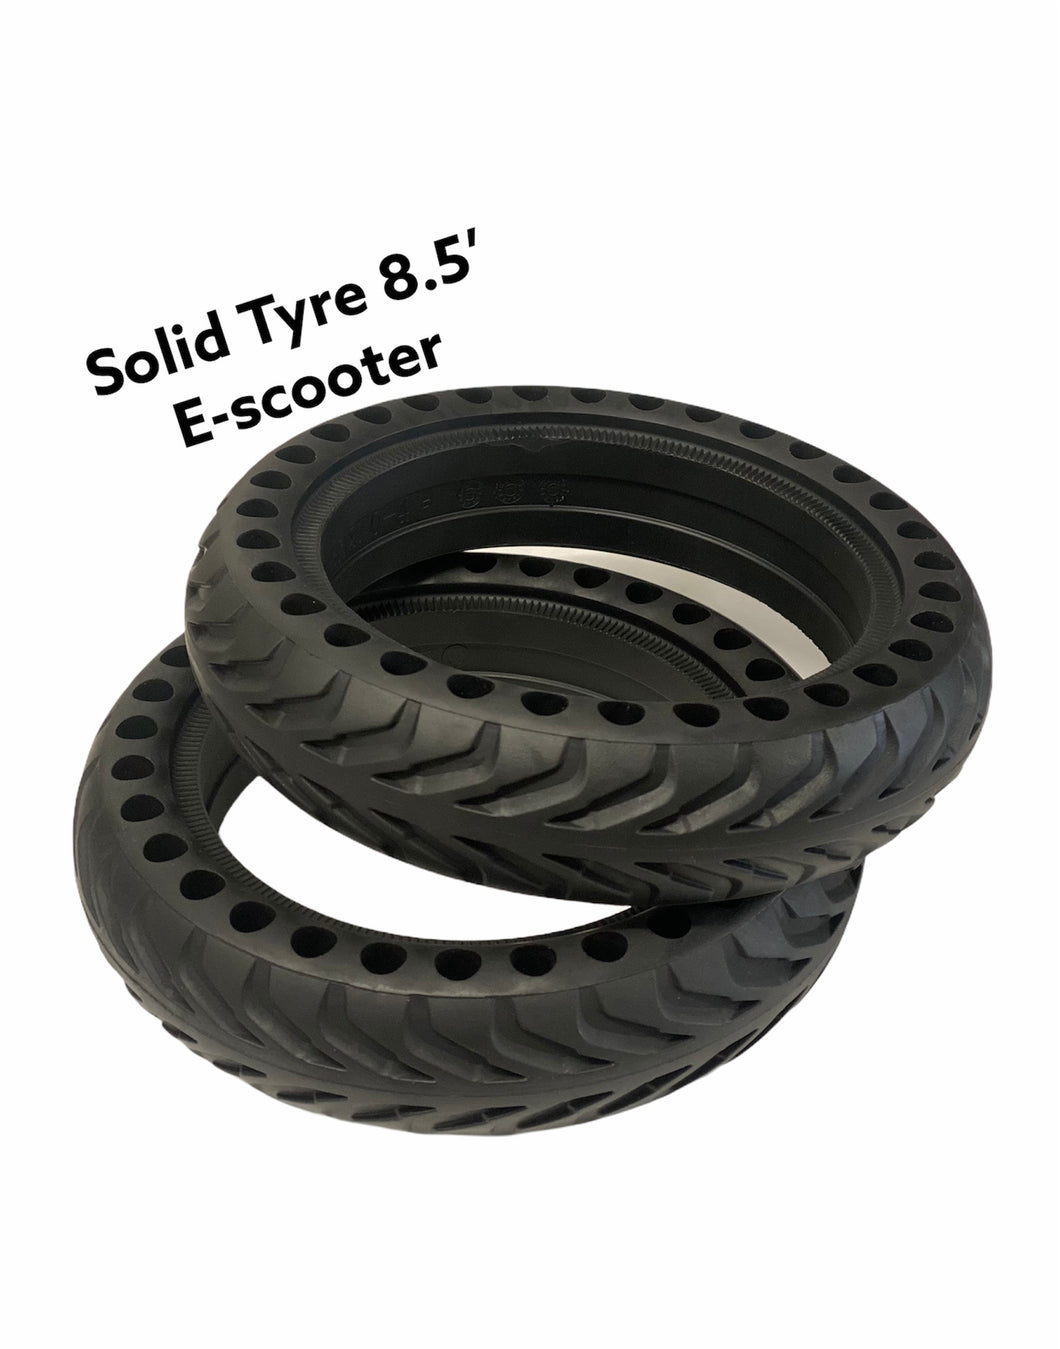 E-Scooter Solid Tyre / Honeycomb Puncture Proof Tyres 8.5' inch